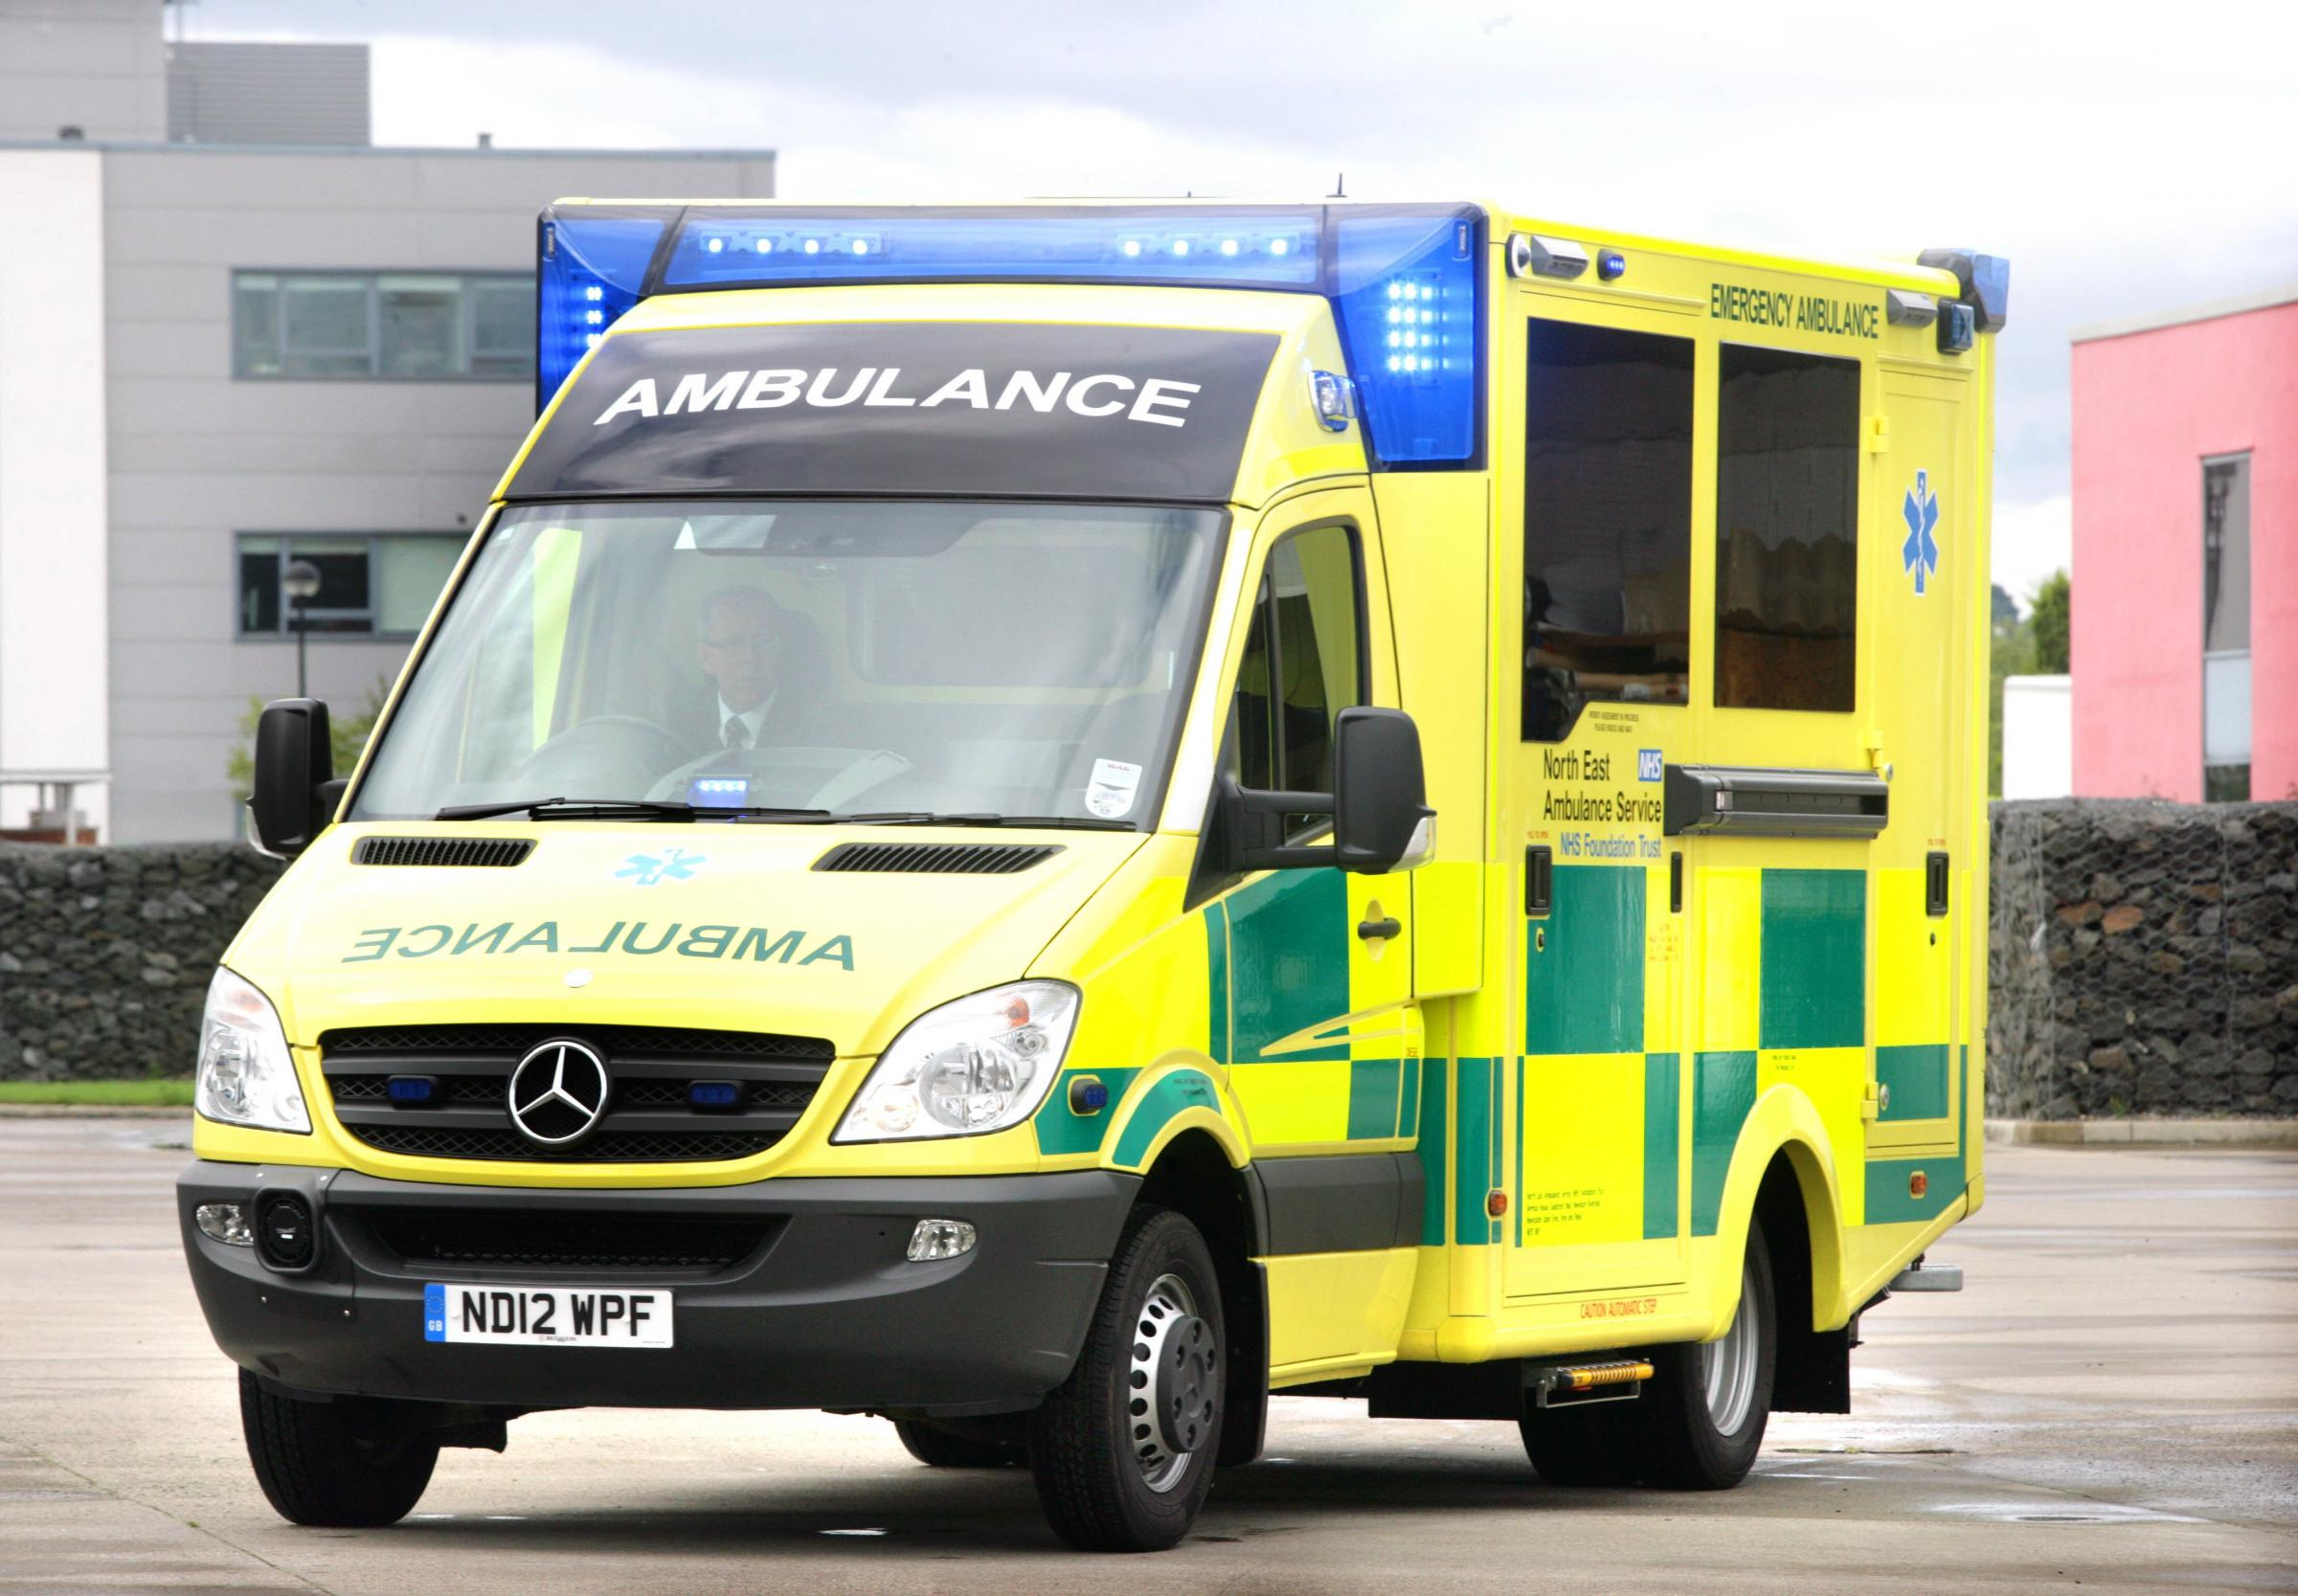 Nimby claims over ambulance concerns